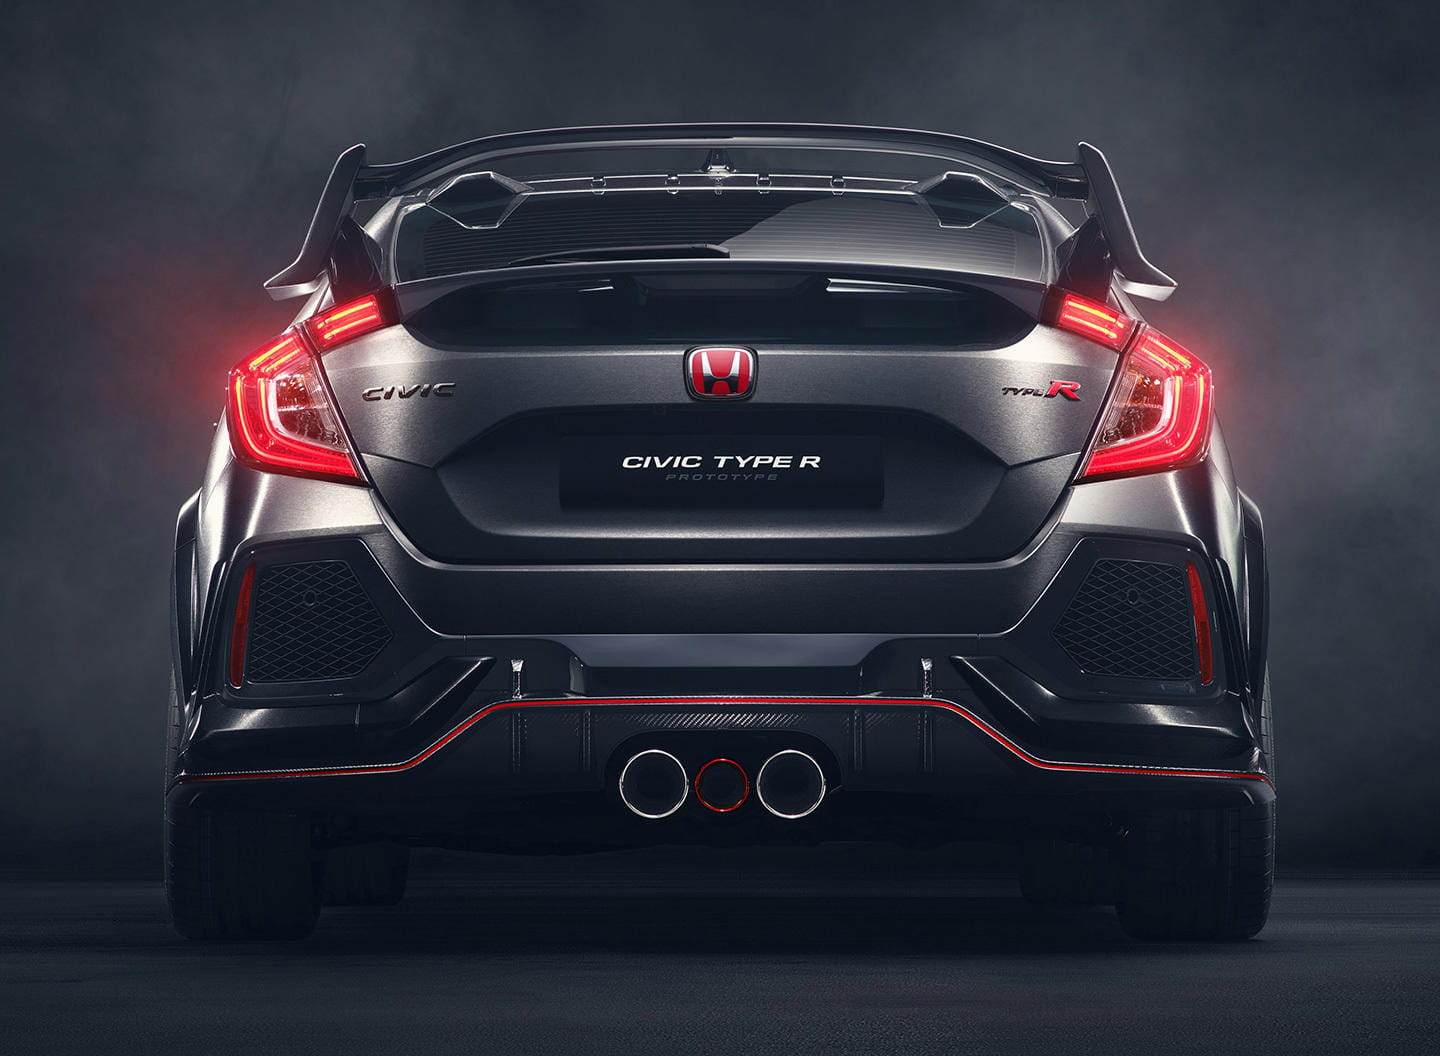 Brutal el nuevo honda civic type r desvelado en 8 fotos for Buy honda civic type r